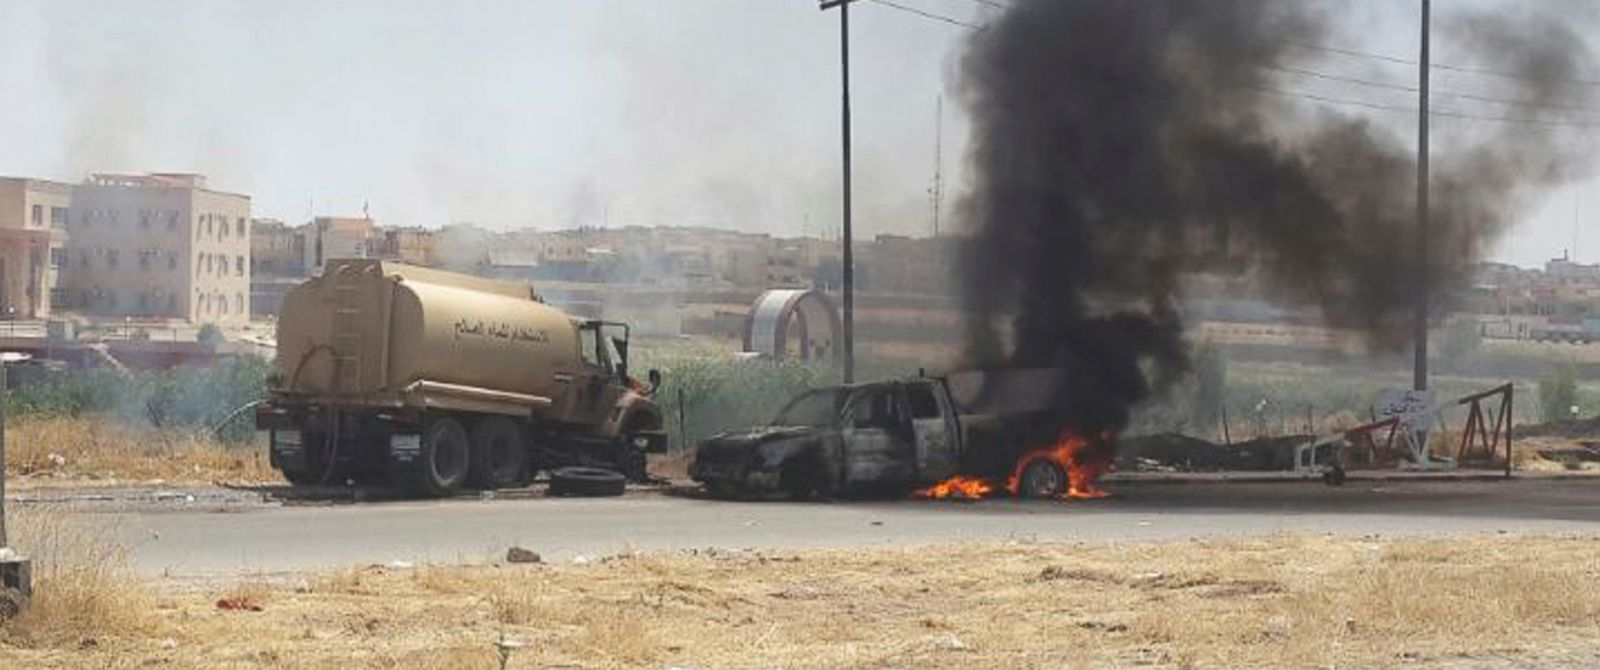 PHOTO: Burning vehicles belonging to Iraqi security forces are seen during clashes between Iraqi security forces and al Qaeda-linked Islamic State in Iraq and the Levant (ISIL) in the northern Iraq city of Mosul, June 10, 2014.